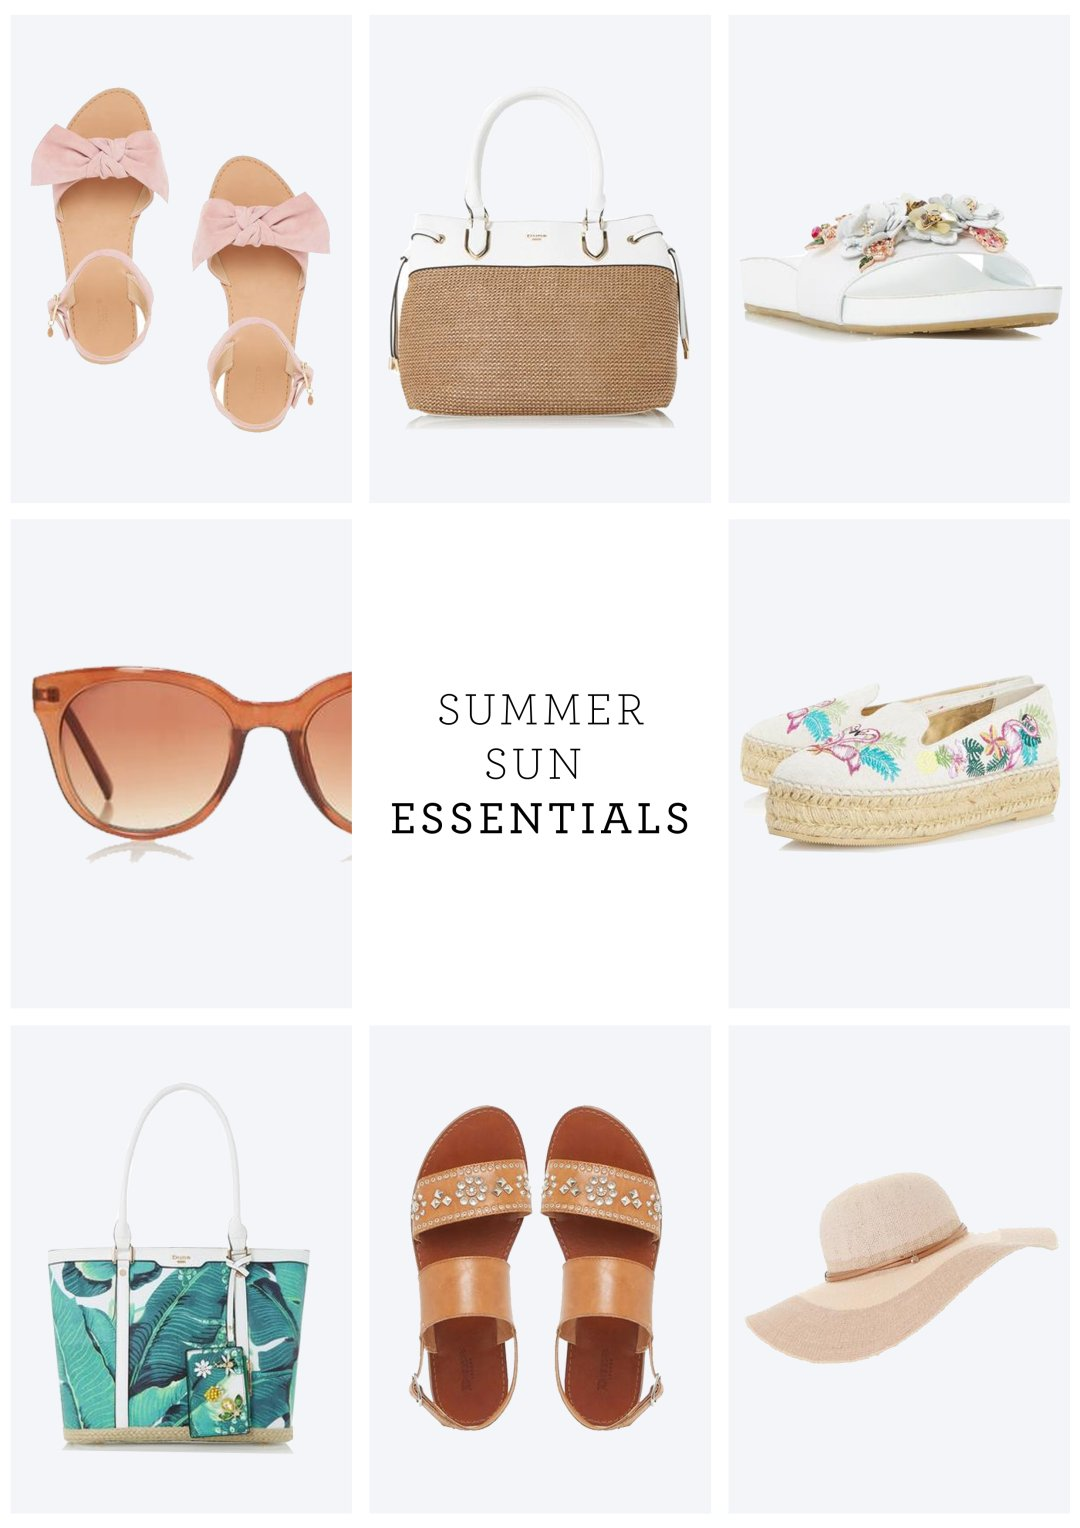 Ladies Holiday Shoes and Accessories   Dune London